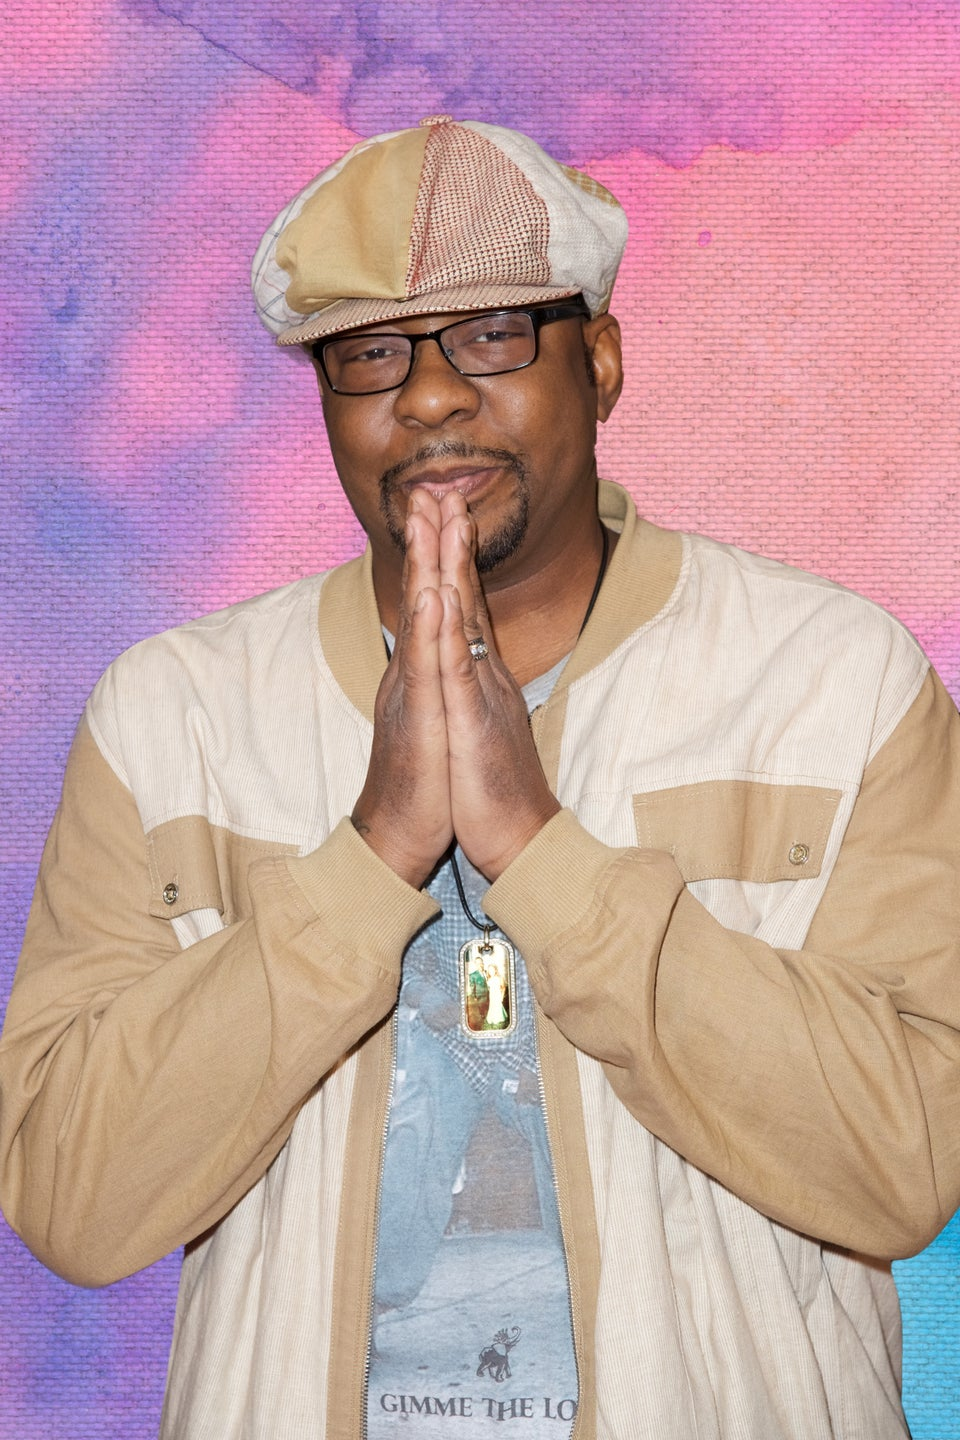 Bobby Brown Wears a Jacket Featuring a Tribute Photo of Late Daughter Bobbi Kristina Brown